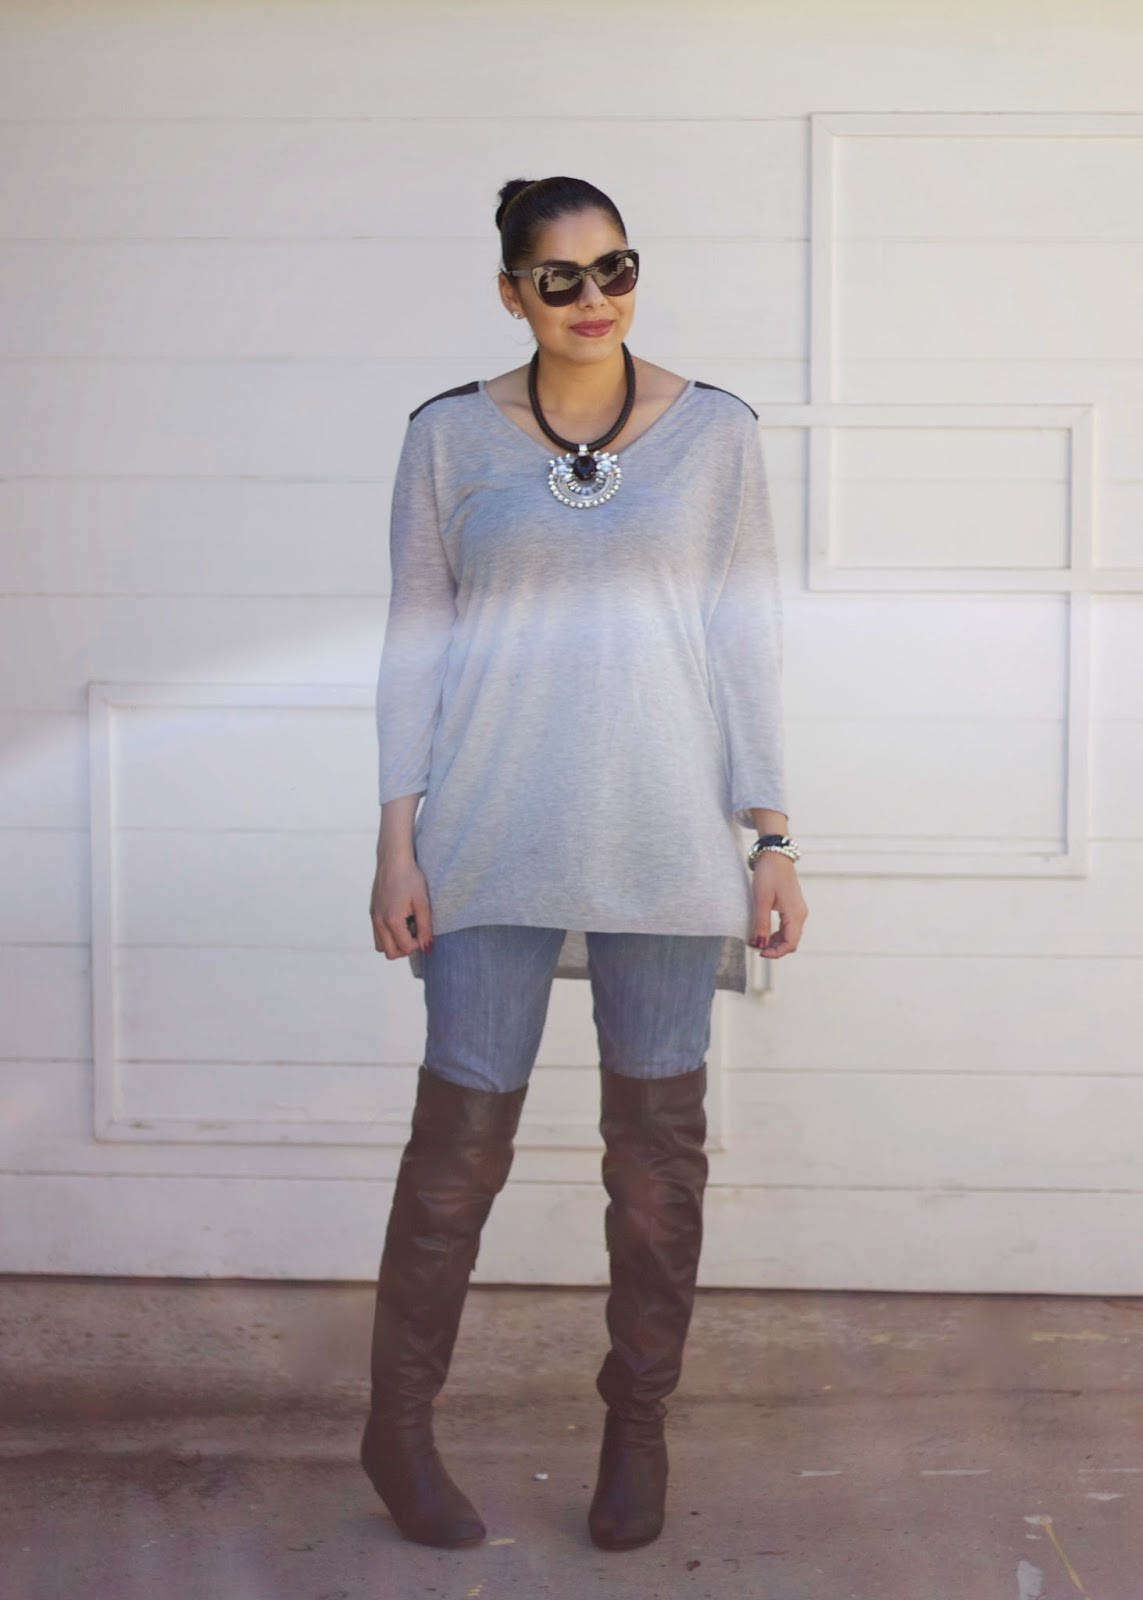 How to wear Boots and Jeans, Boots for Fall 2014, Edgy Casual Fall Outfit 2014, H&M gray shirt, how to wear red plaid, f21 blogger, Hudson jeans, f21 black cateye sunnies, san diego fashion blogger, how to wear grey for Fall, how to wear gray in winter